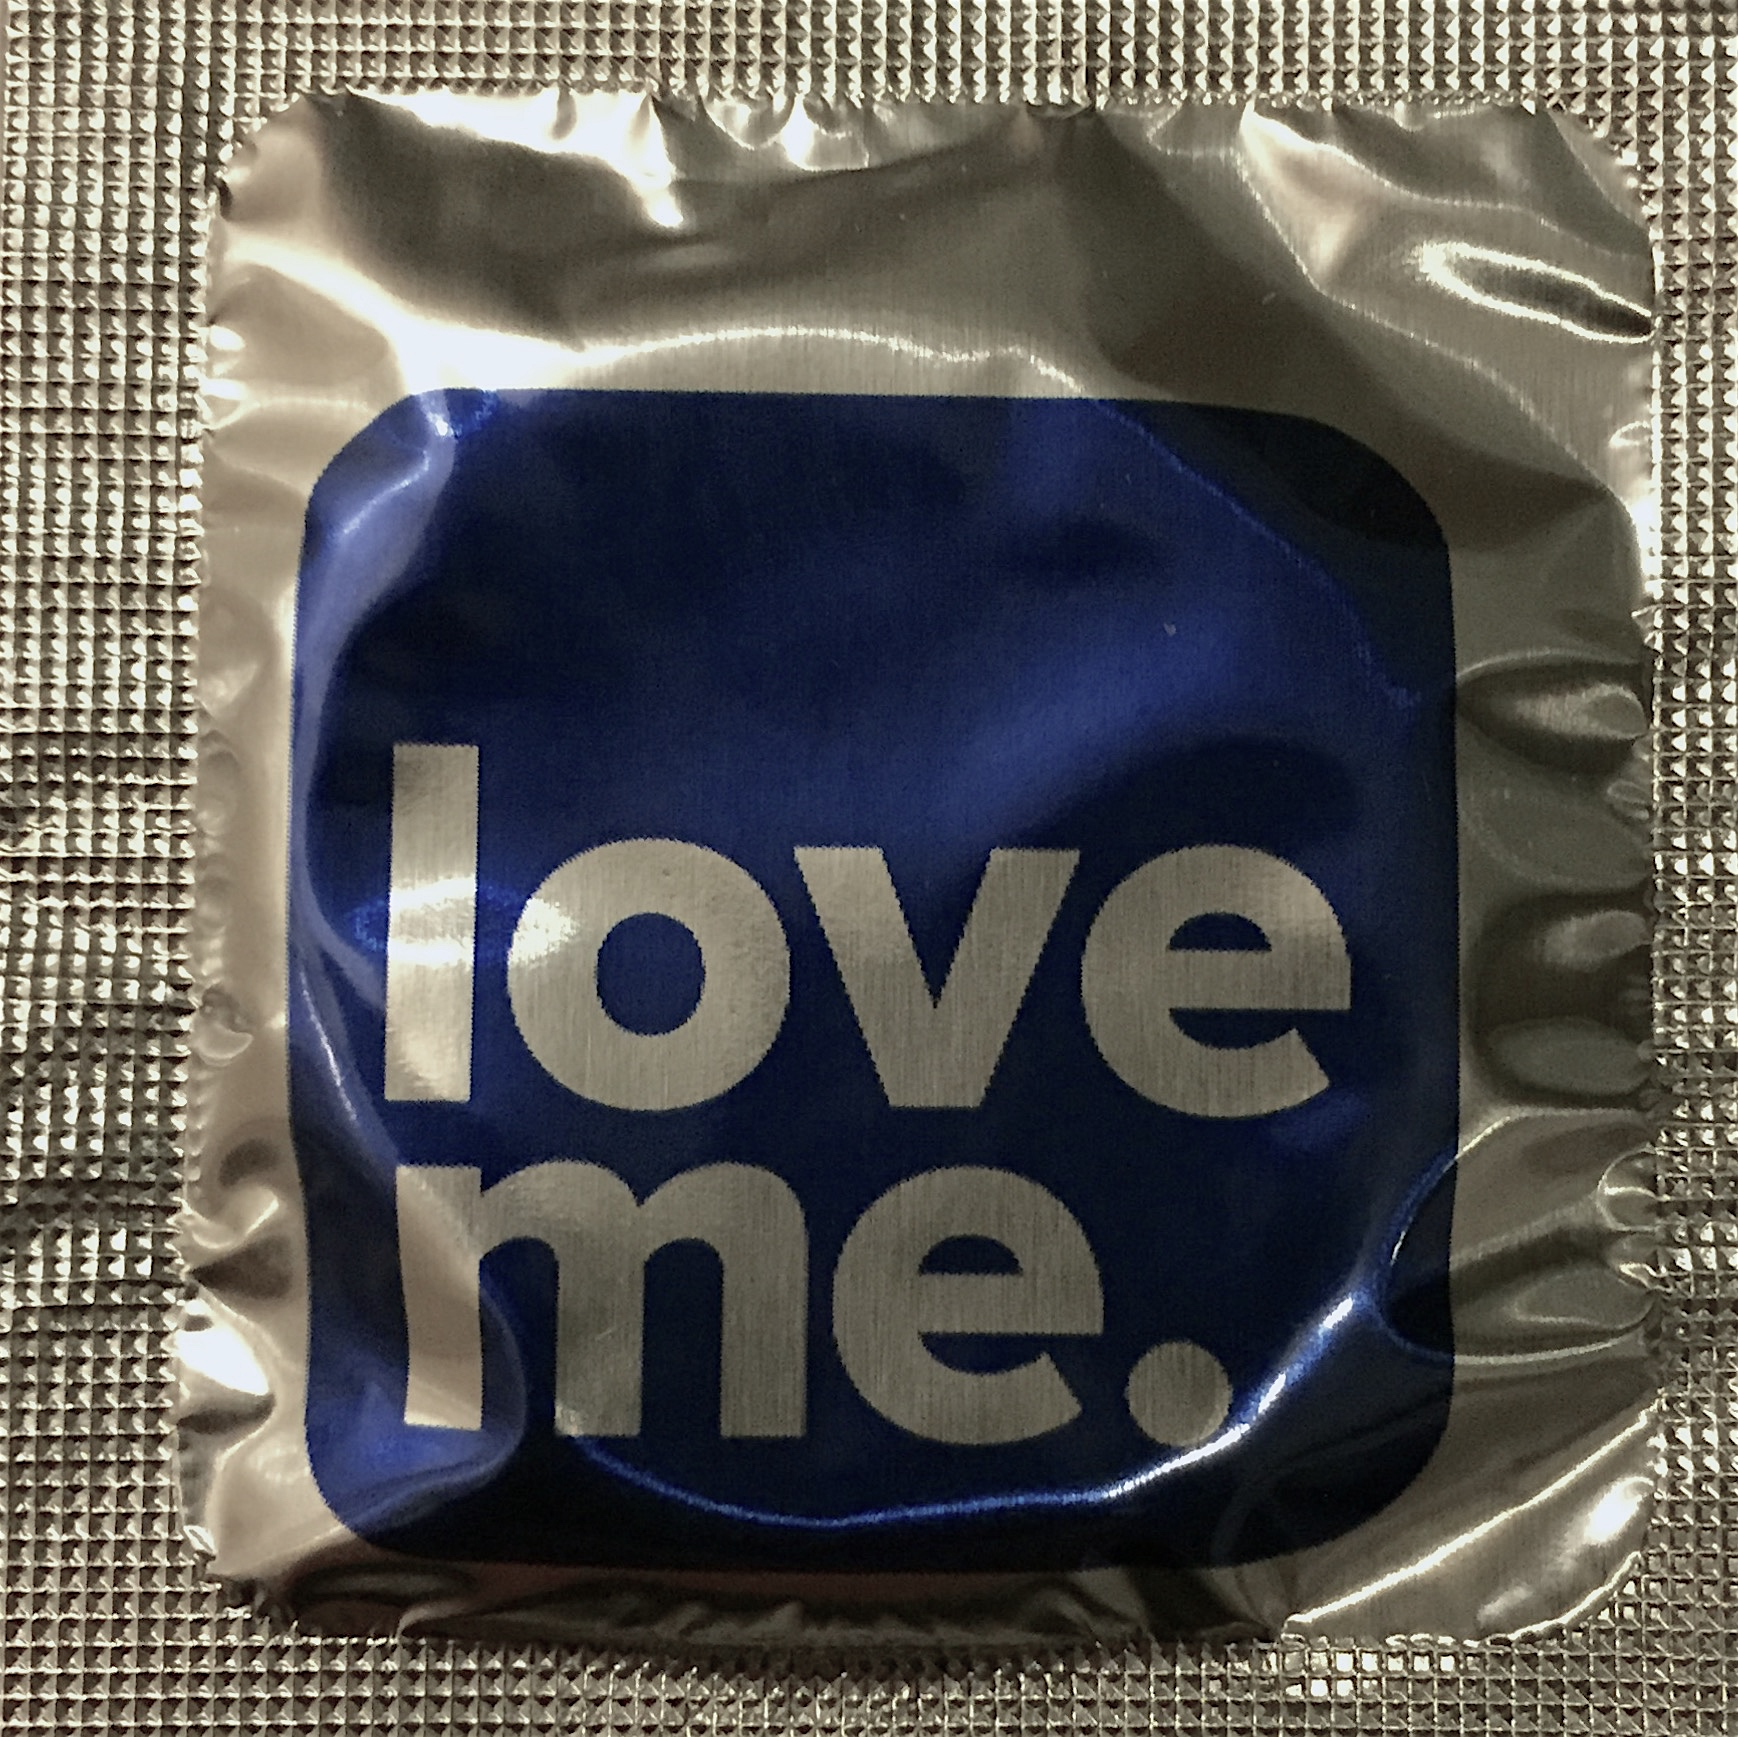 Love me small image